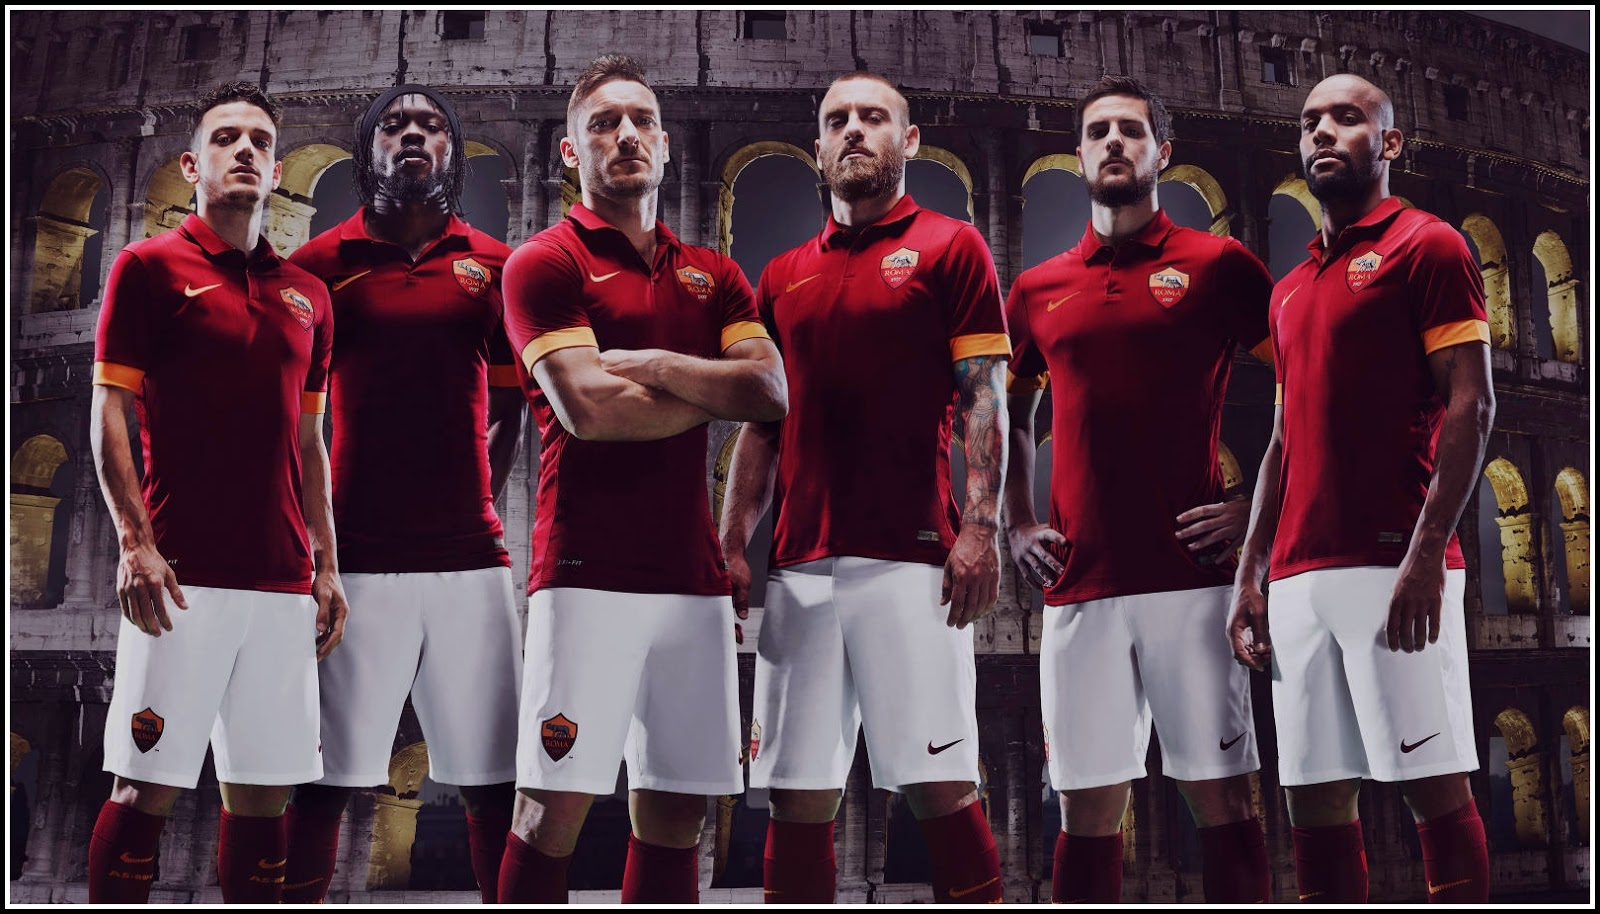 Walpapper AS Roma 14-15 Home Kit